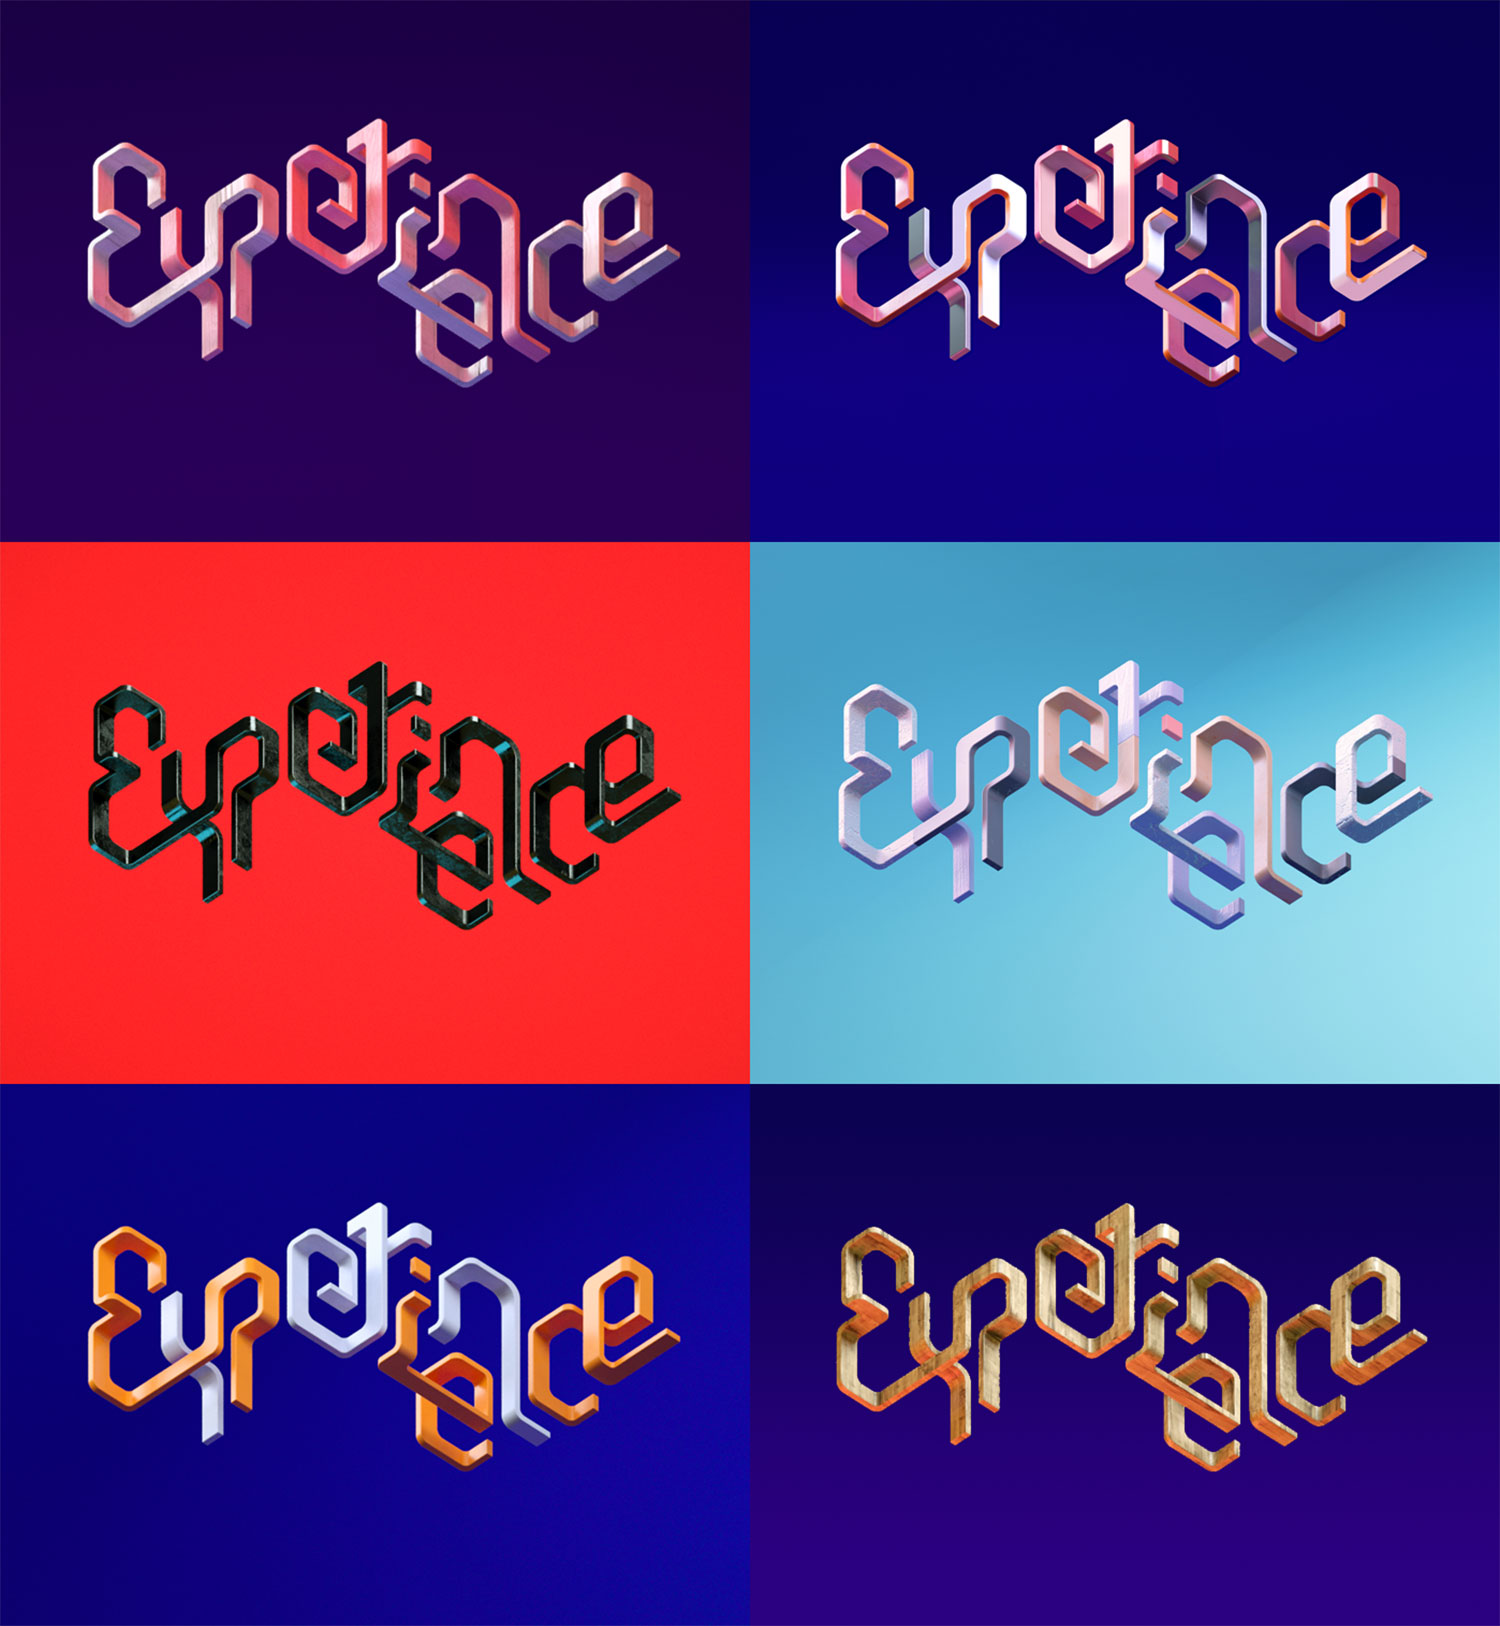 Adobe Experience - 3D typographic key visual - Version 1 explorations.